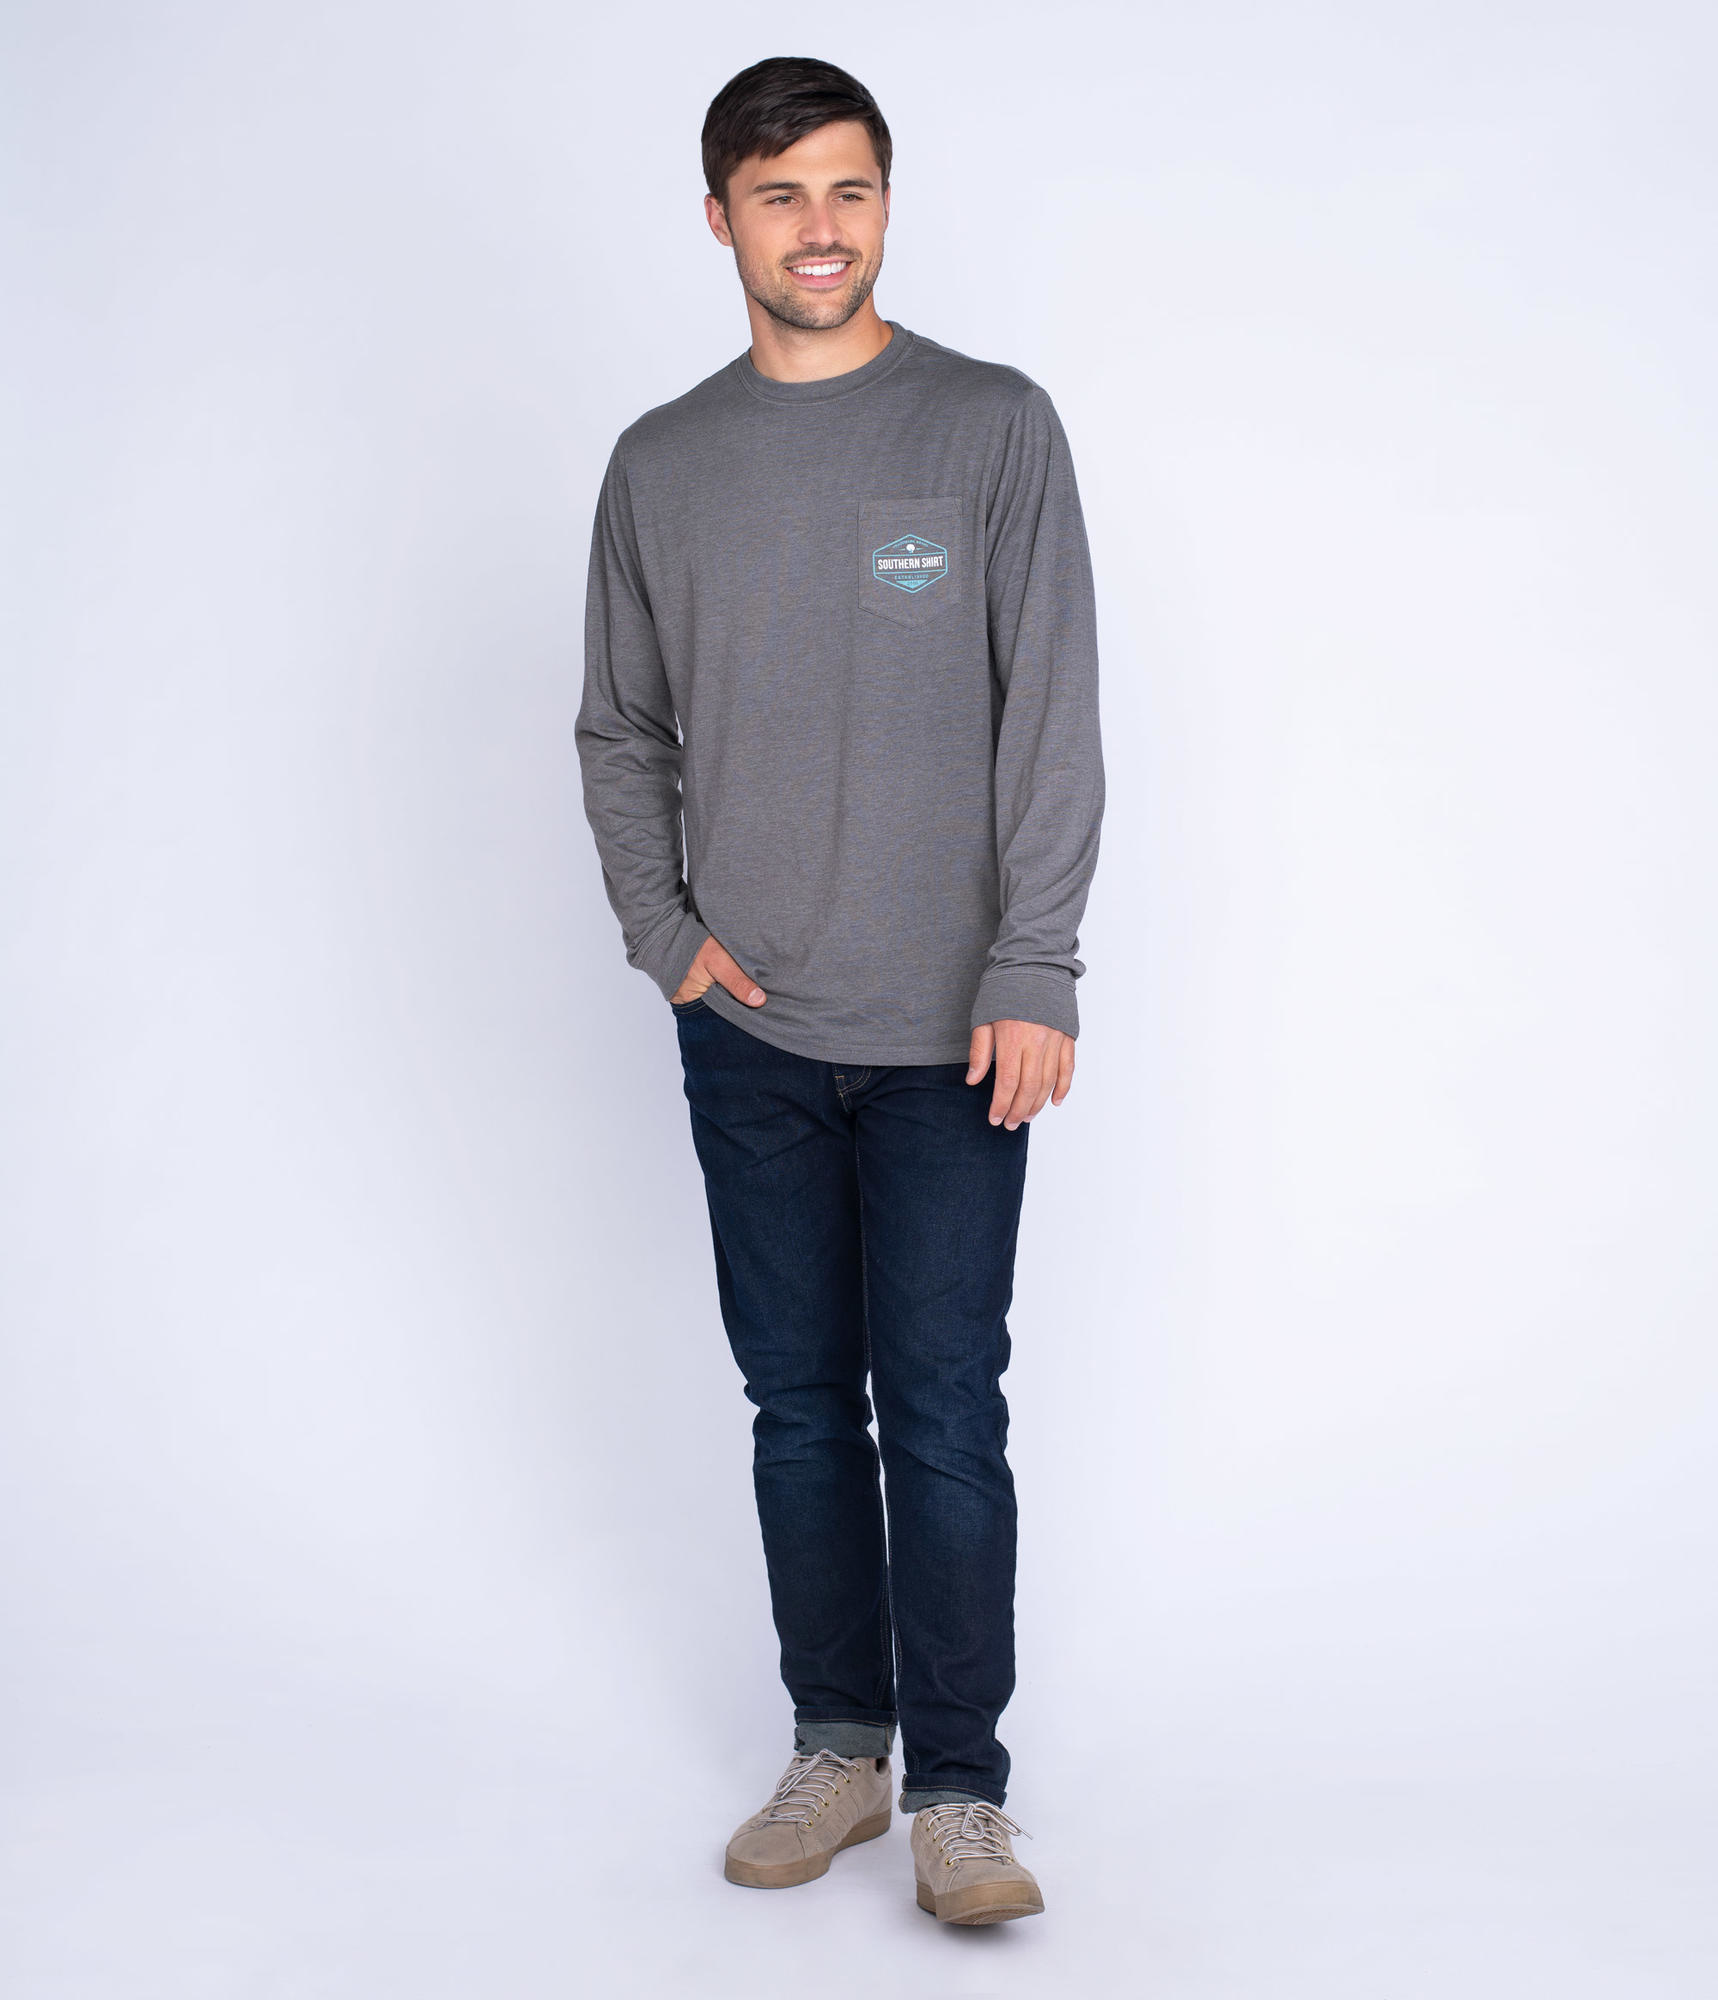 Southern Shirt Tri Color Trout Tee LS